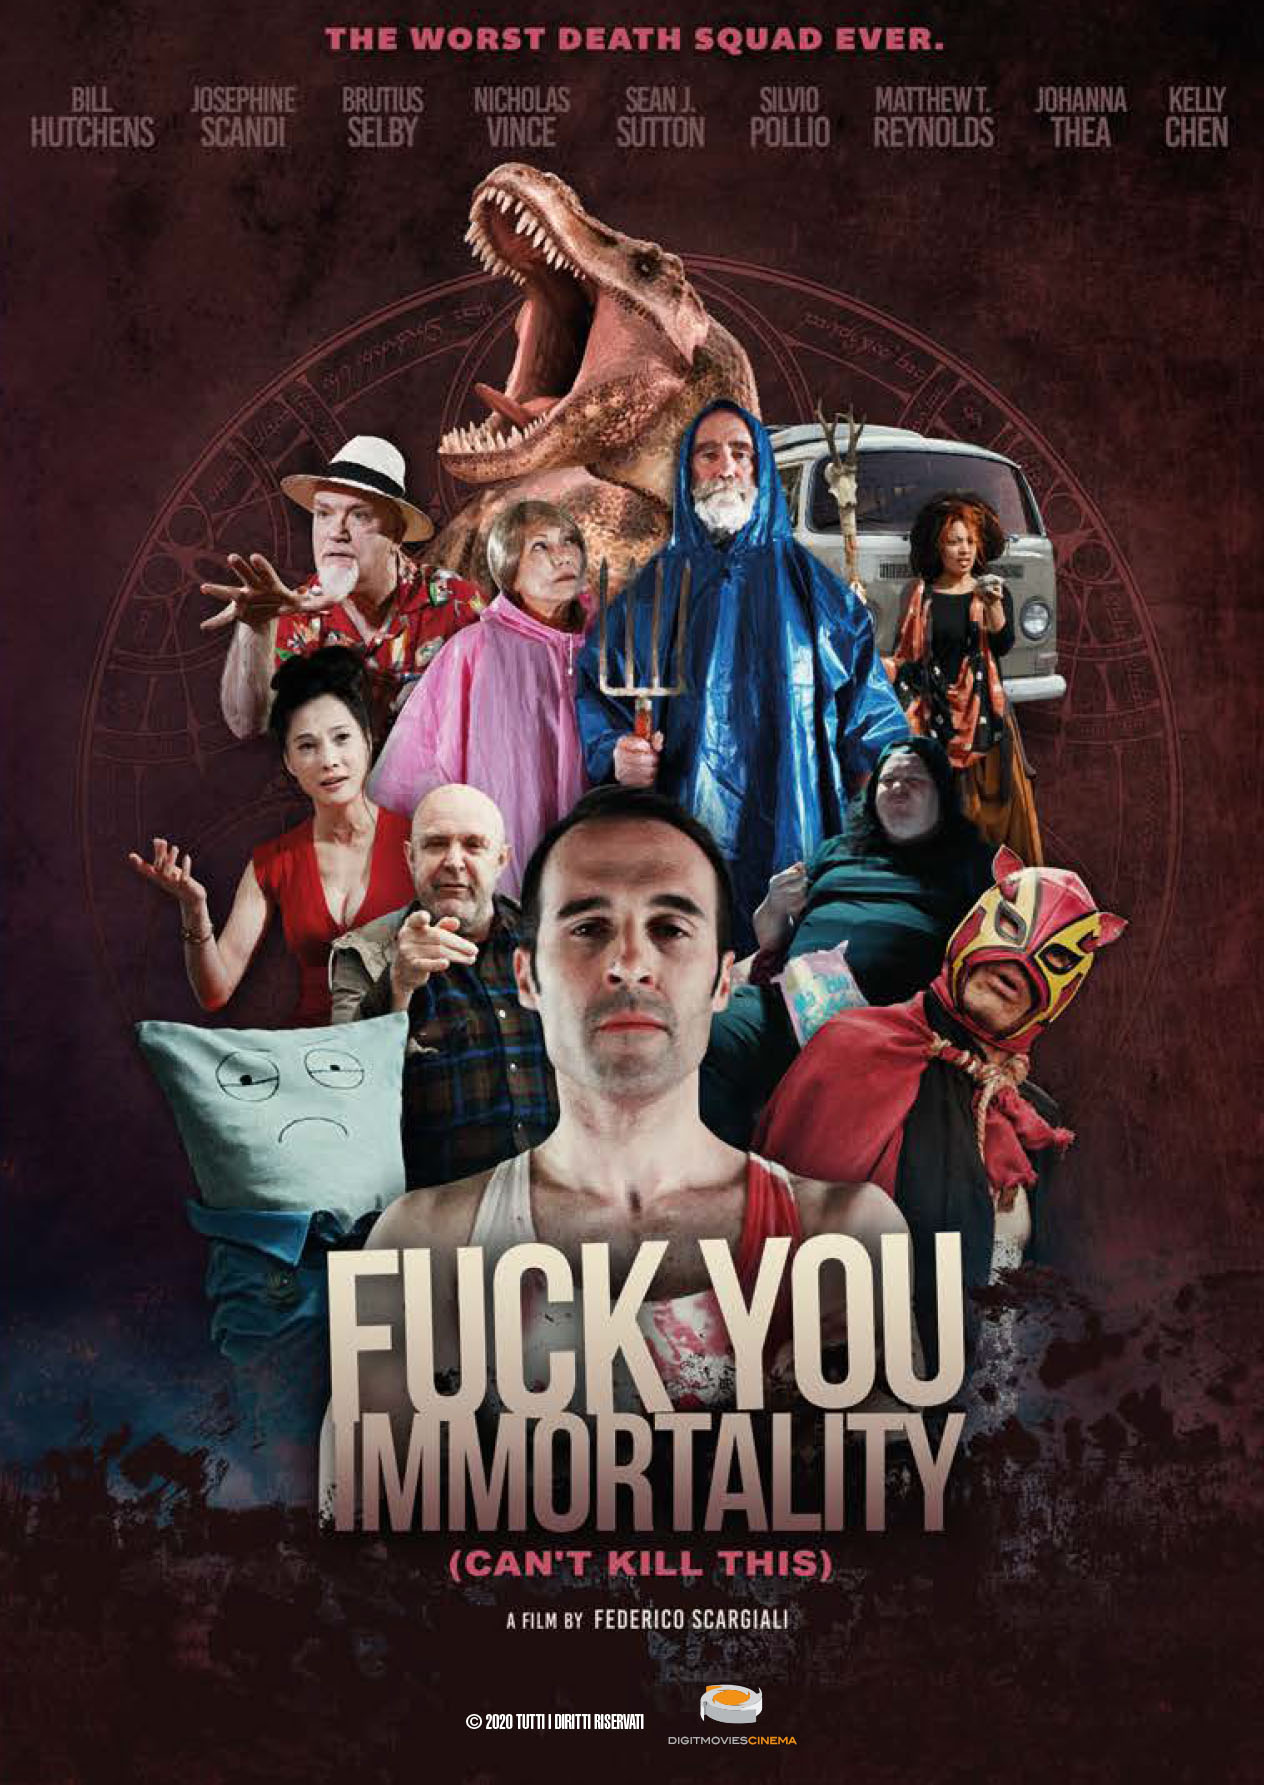 FUCK YOU IMMORTALITY (CAN'T KILL THIS) (DVD)